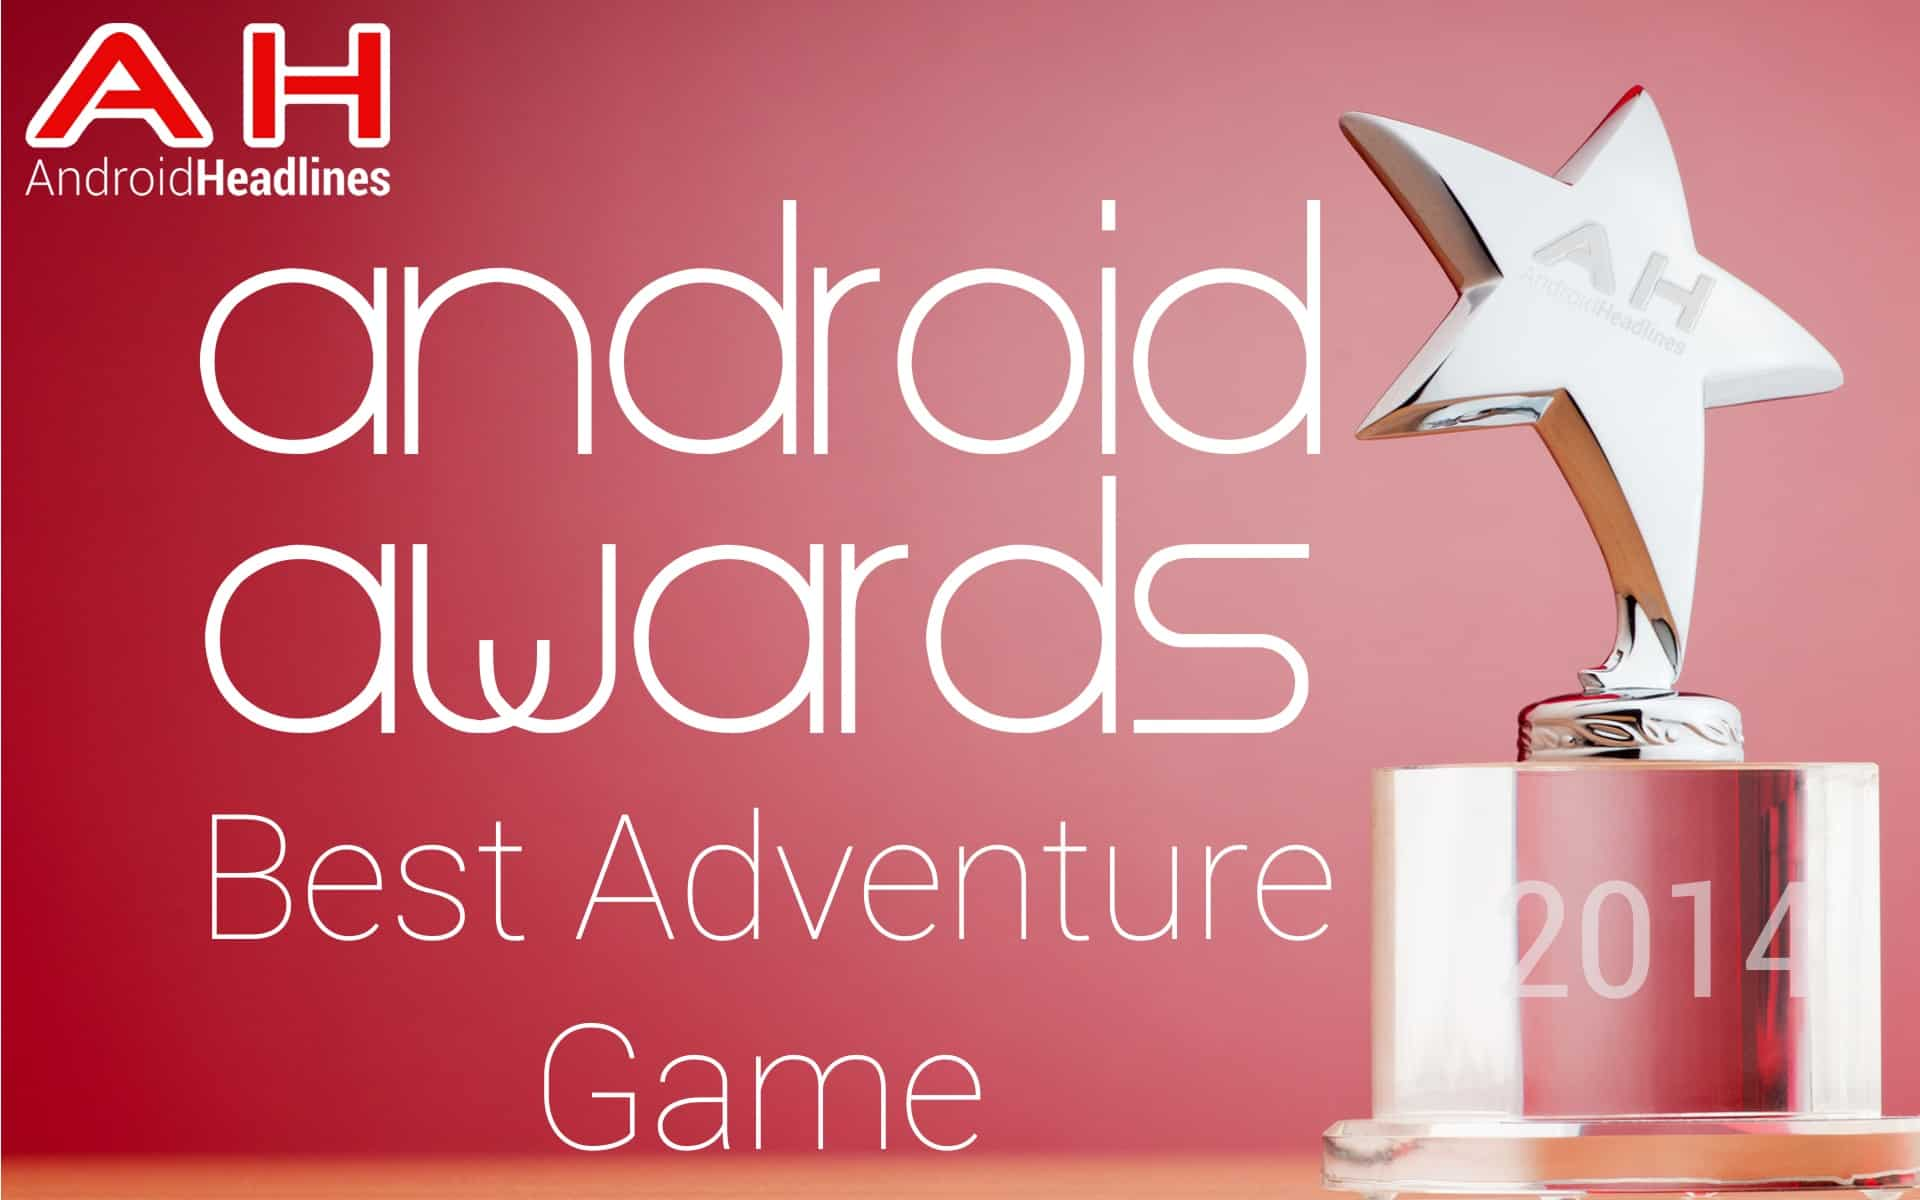 AH Awards 2015 Best Adventure Game Android